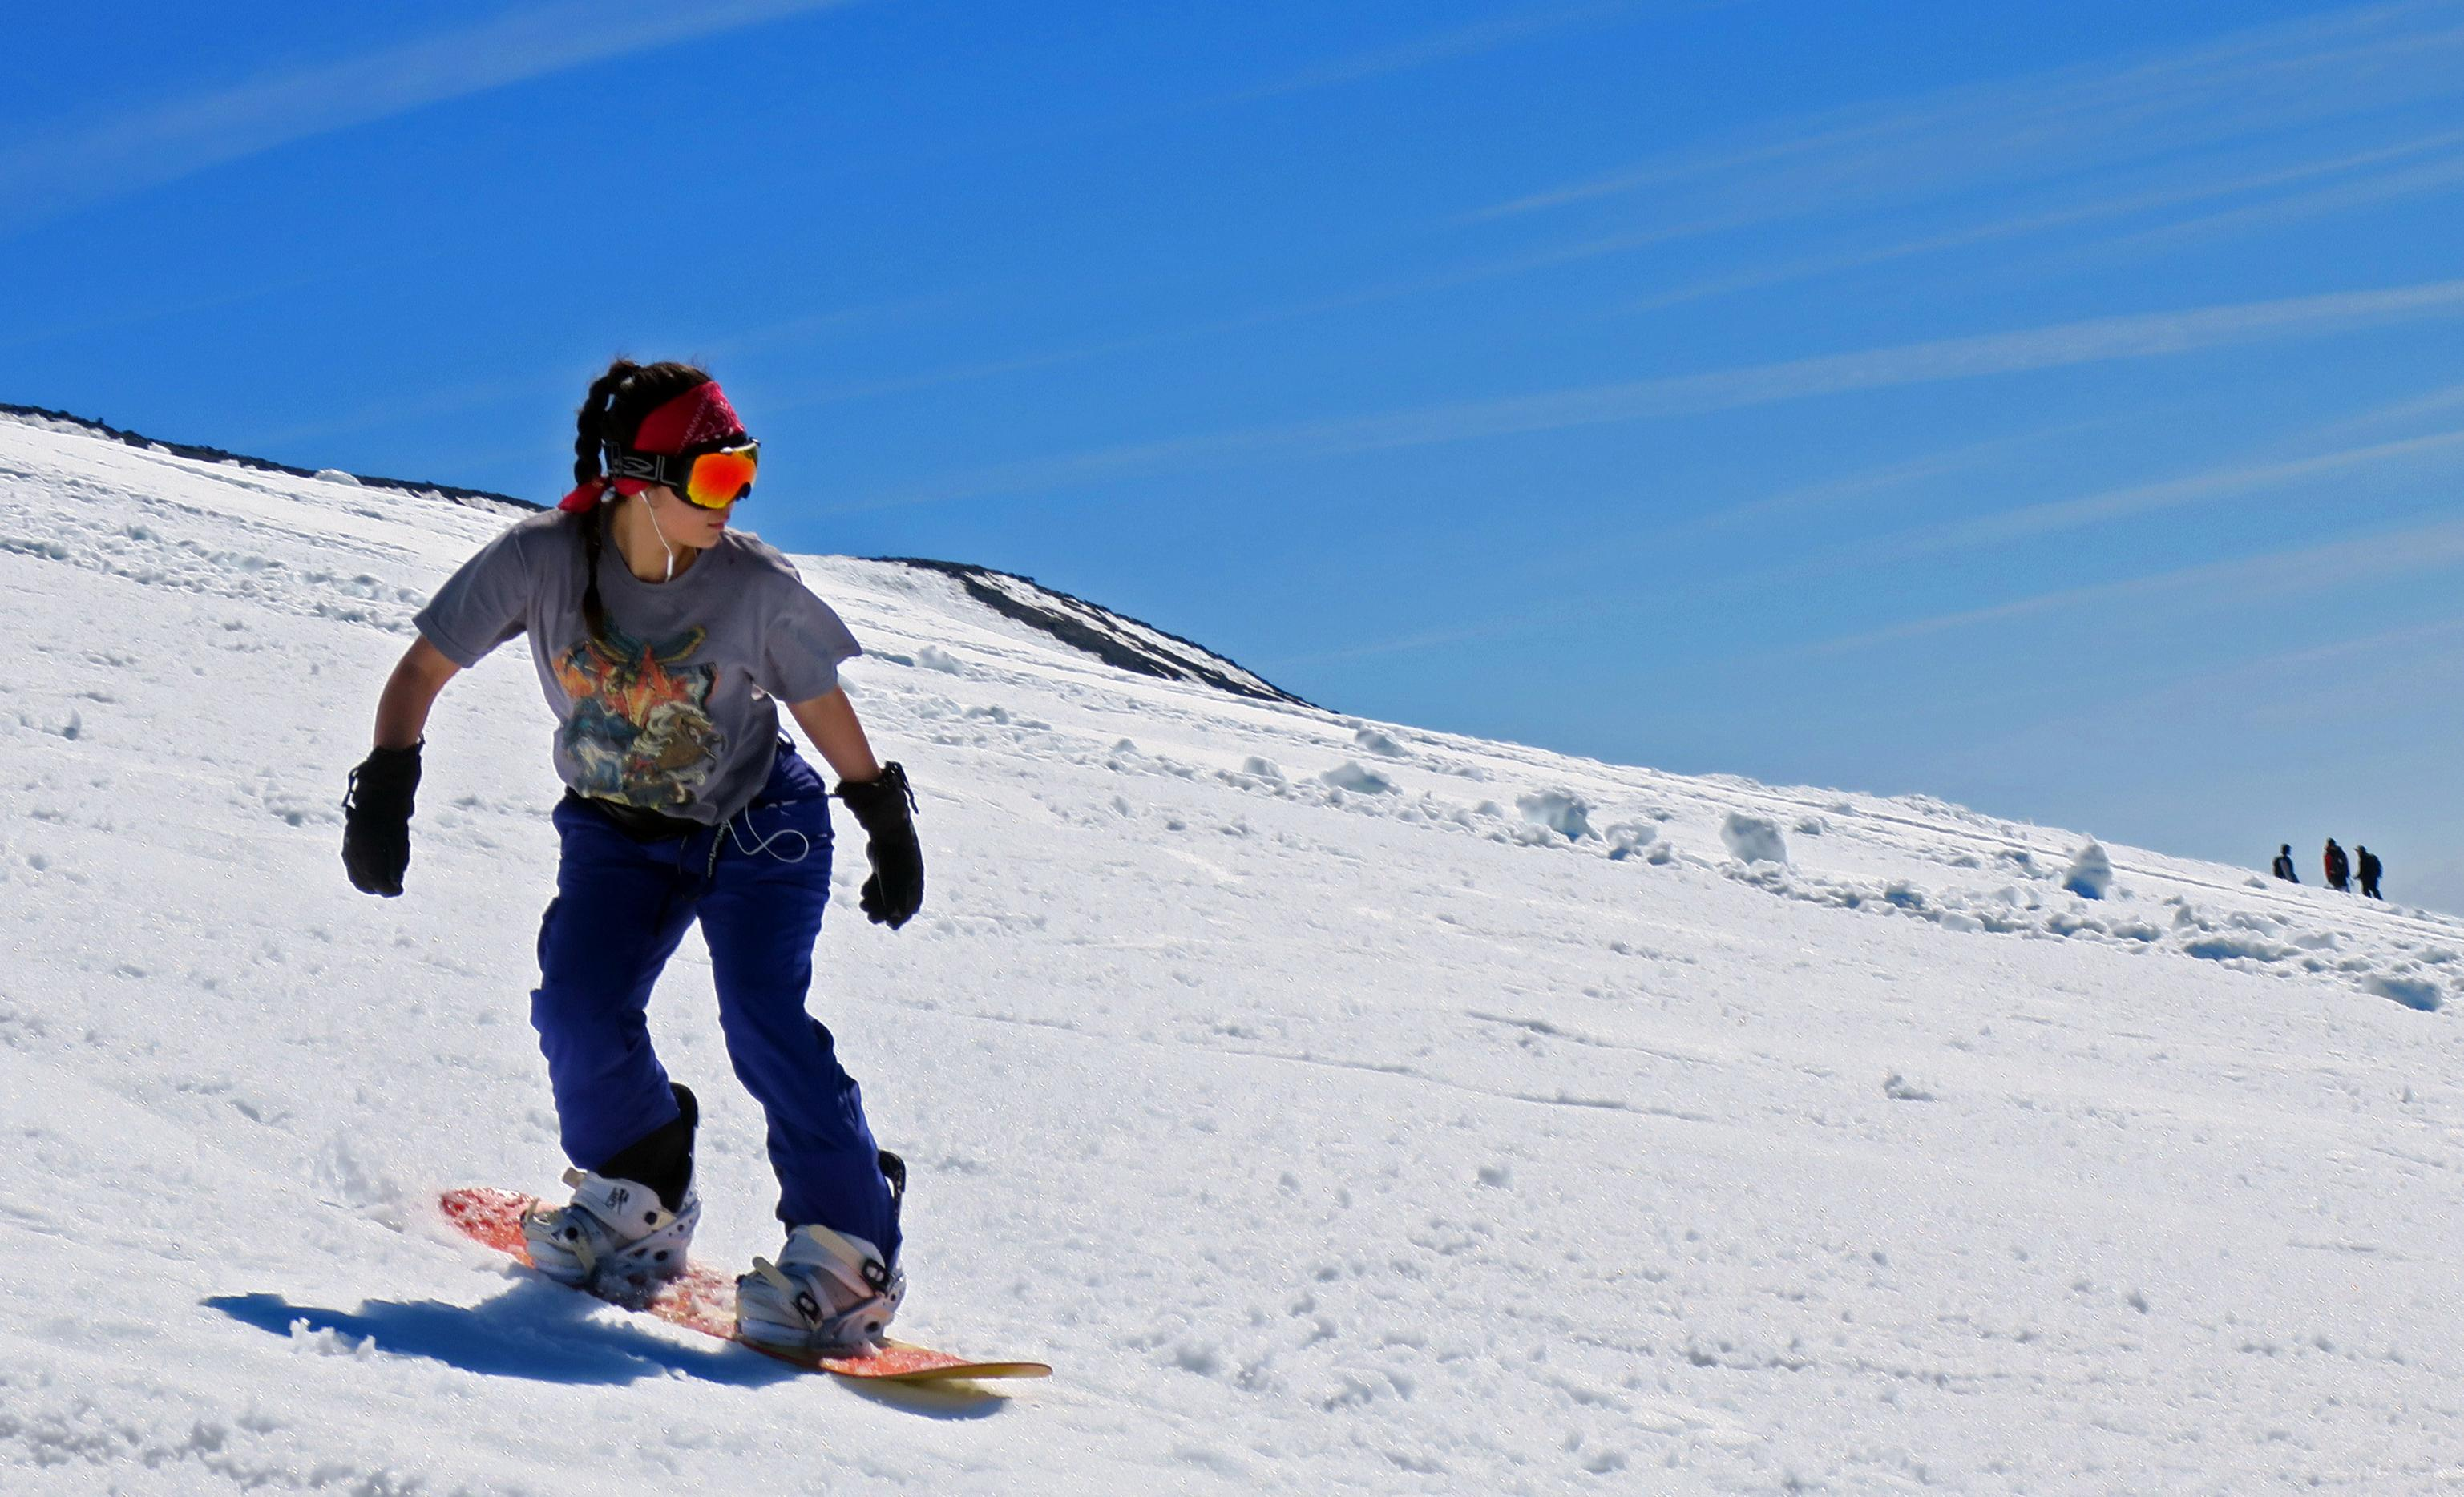 summer skiing: mt. hood provides year-round access to snow | the